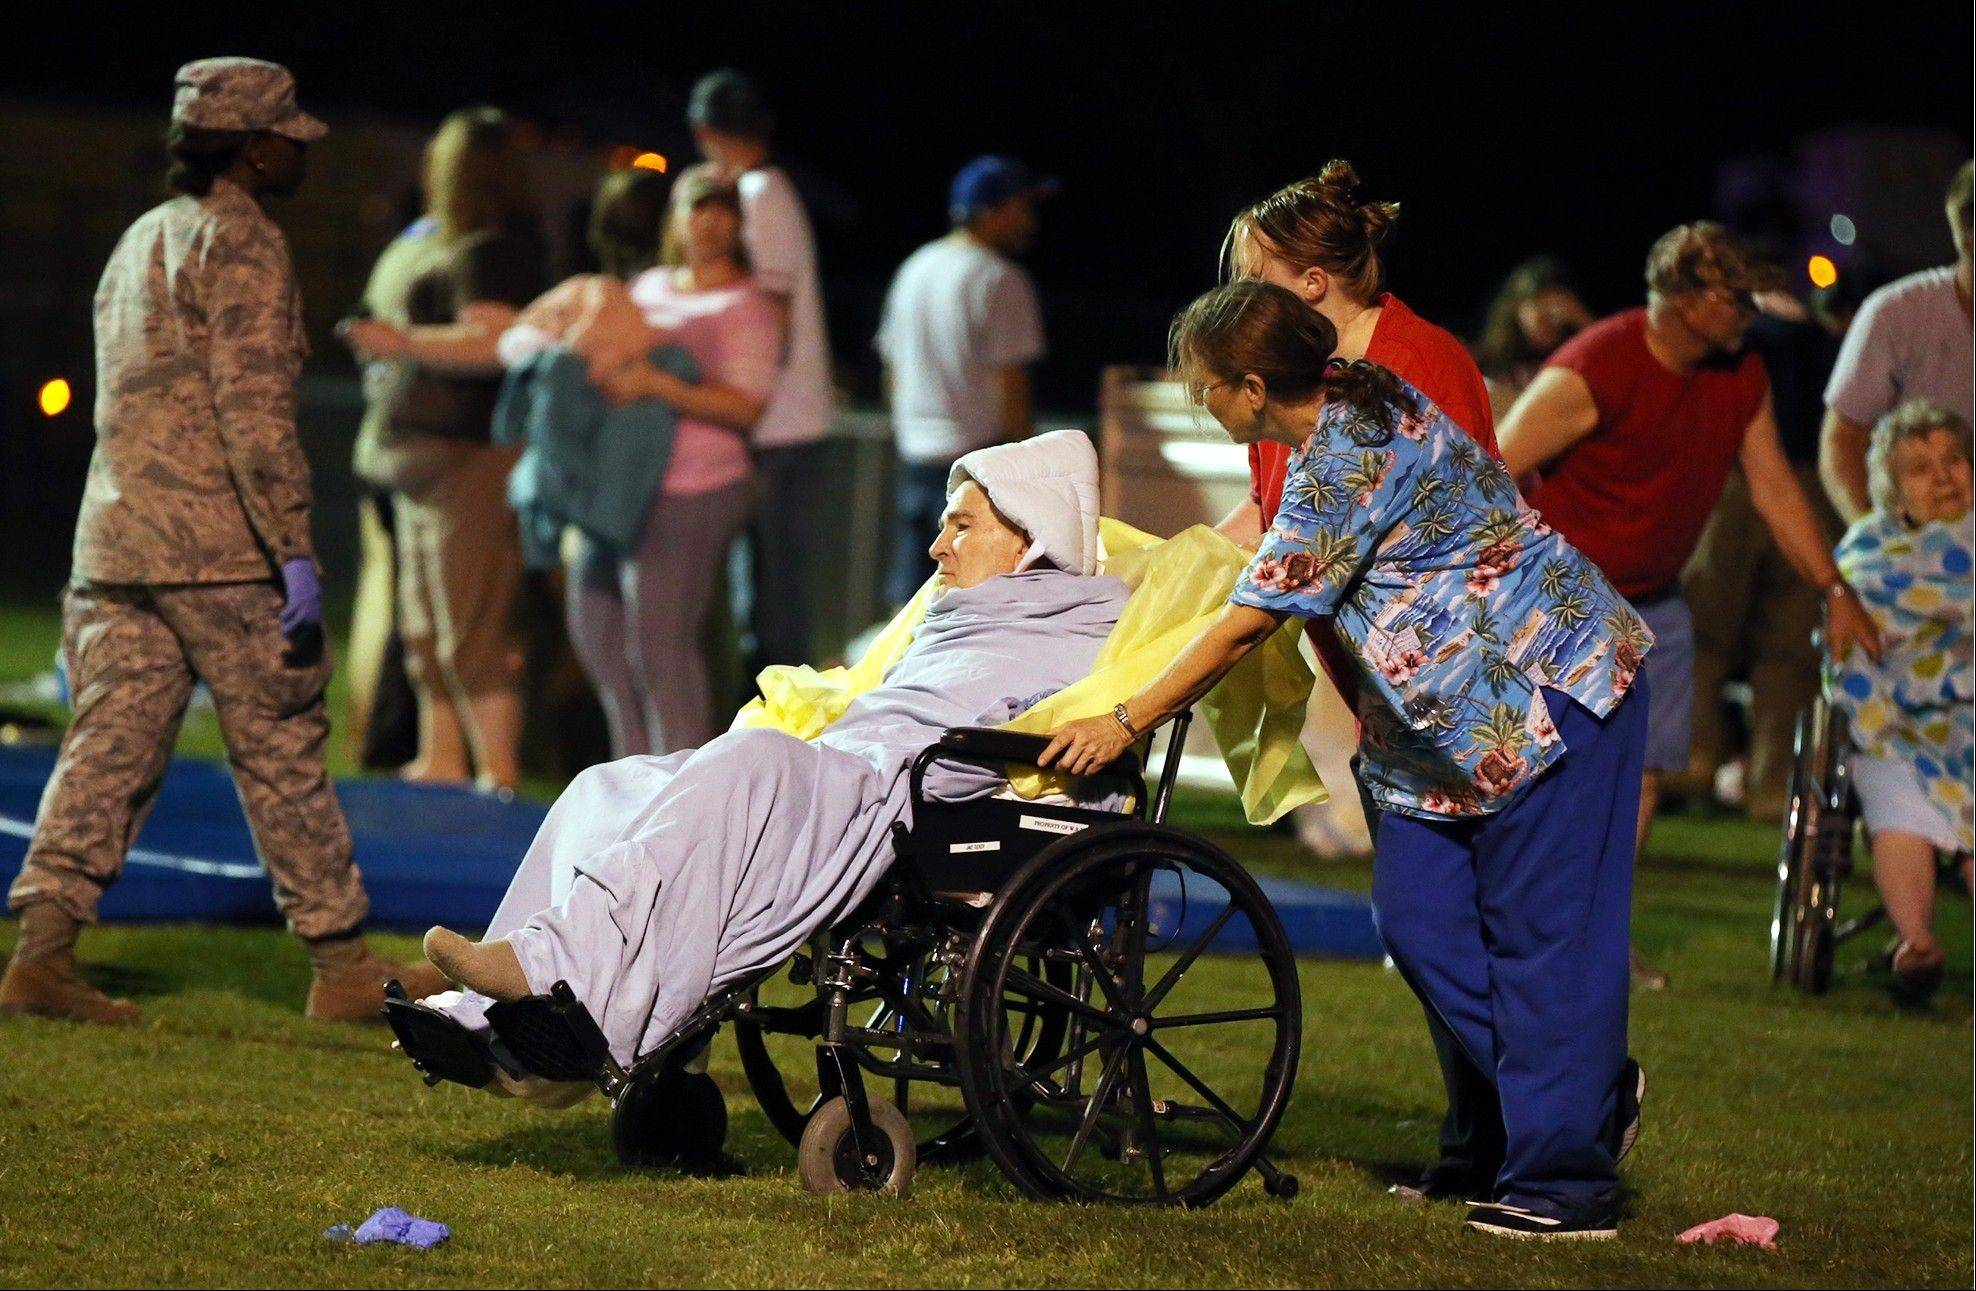 Emergency workers assist an elderly person at a staging area at a local school stadium Wednesday in West, Texas. An explosion Wednesday night at a fertilizer plant near Waco sent flames shooting high into the night sky, leaving the factory a smoldering ruin, causing major damage at nearby buildings and injuring numerous people.